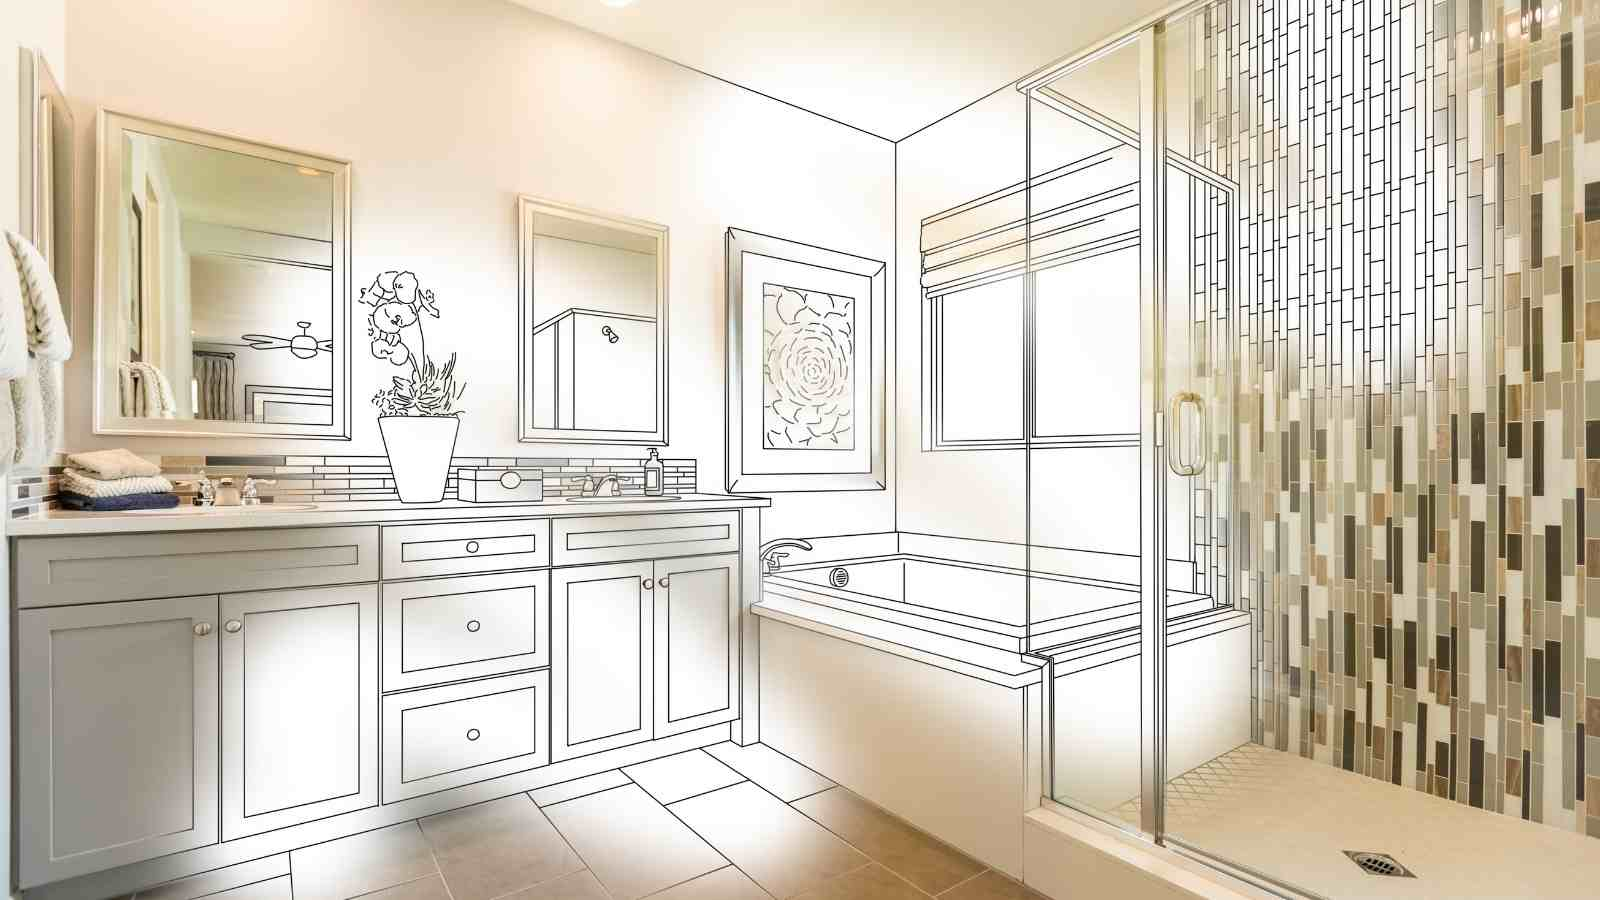 35 amazing bathroom remodel diy ideas that give a stunning for Bathroom renovation ideas